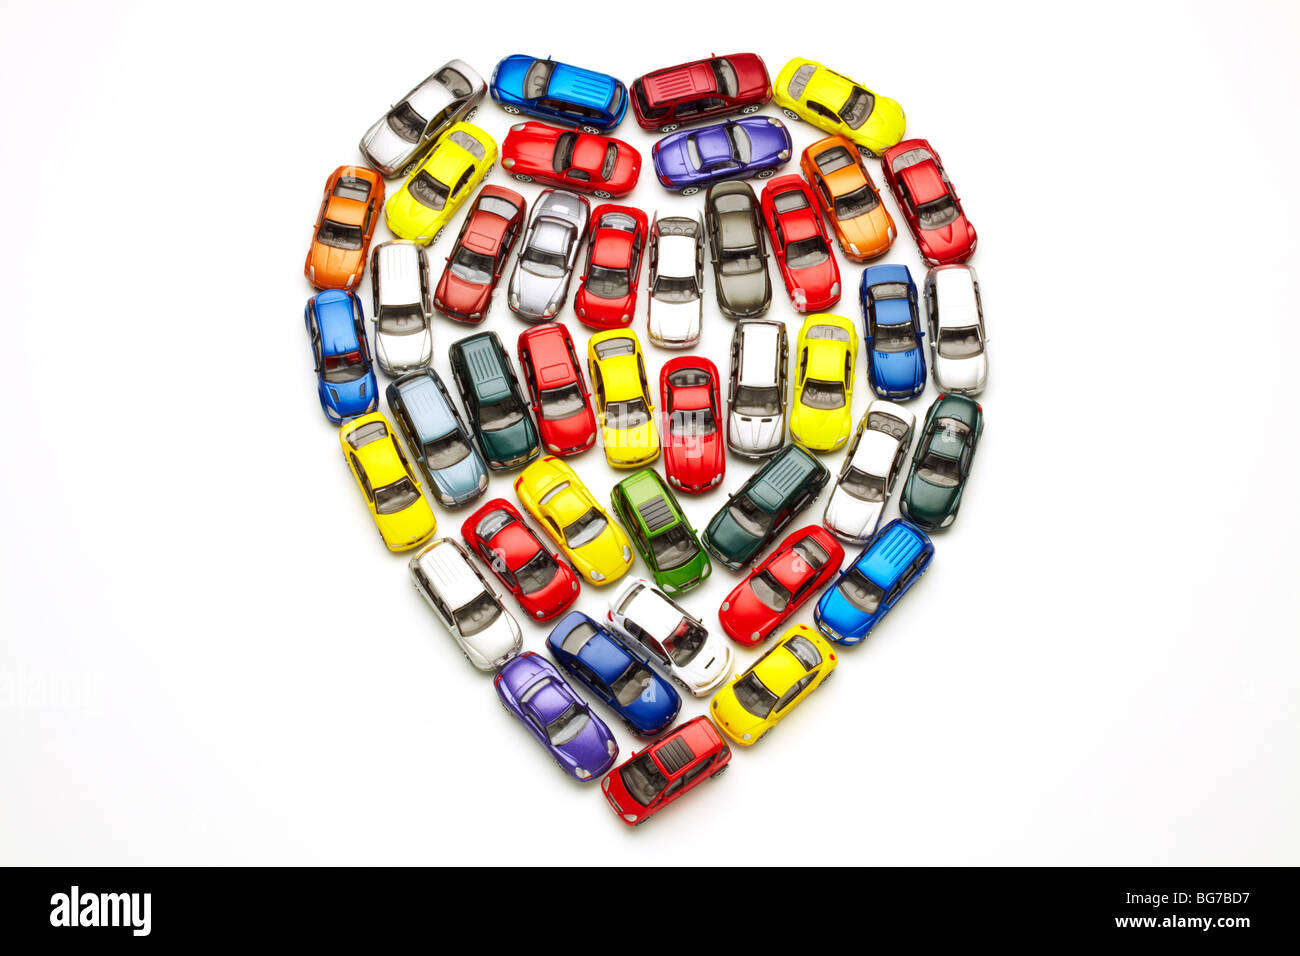 Model Cars en forme de coeur Photo Stock